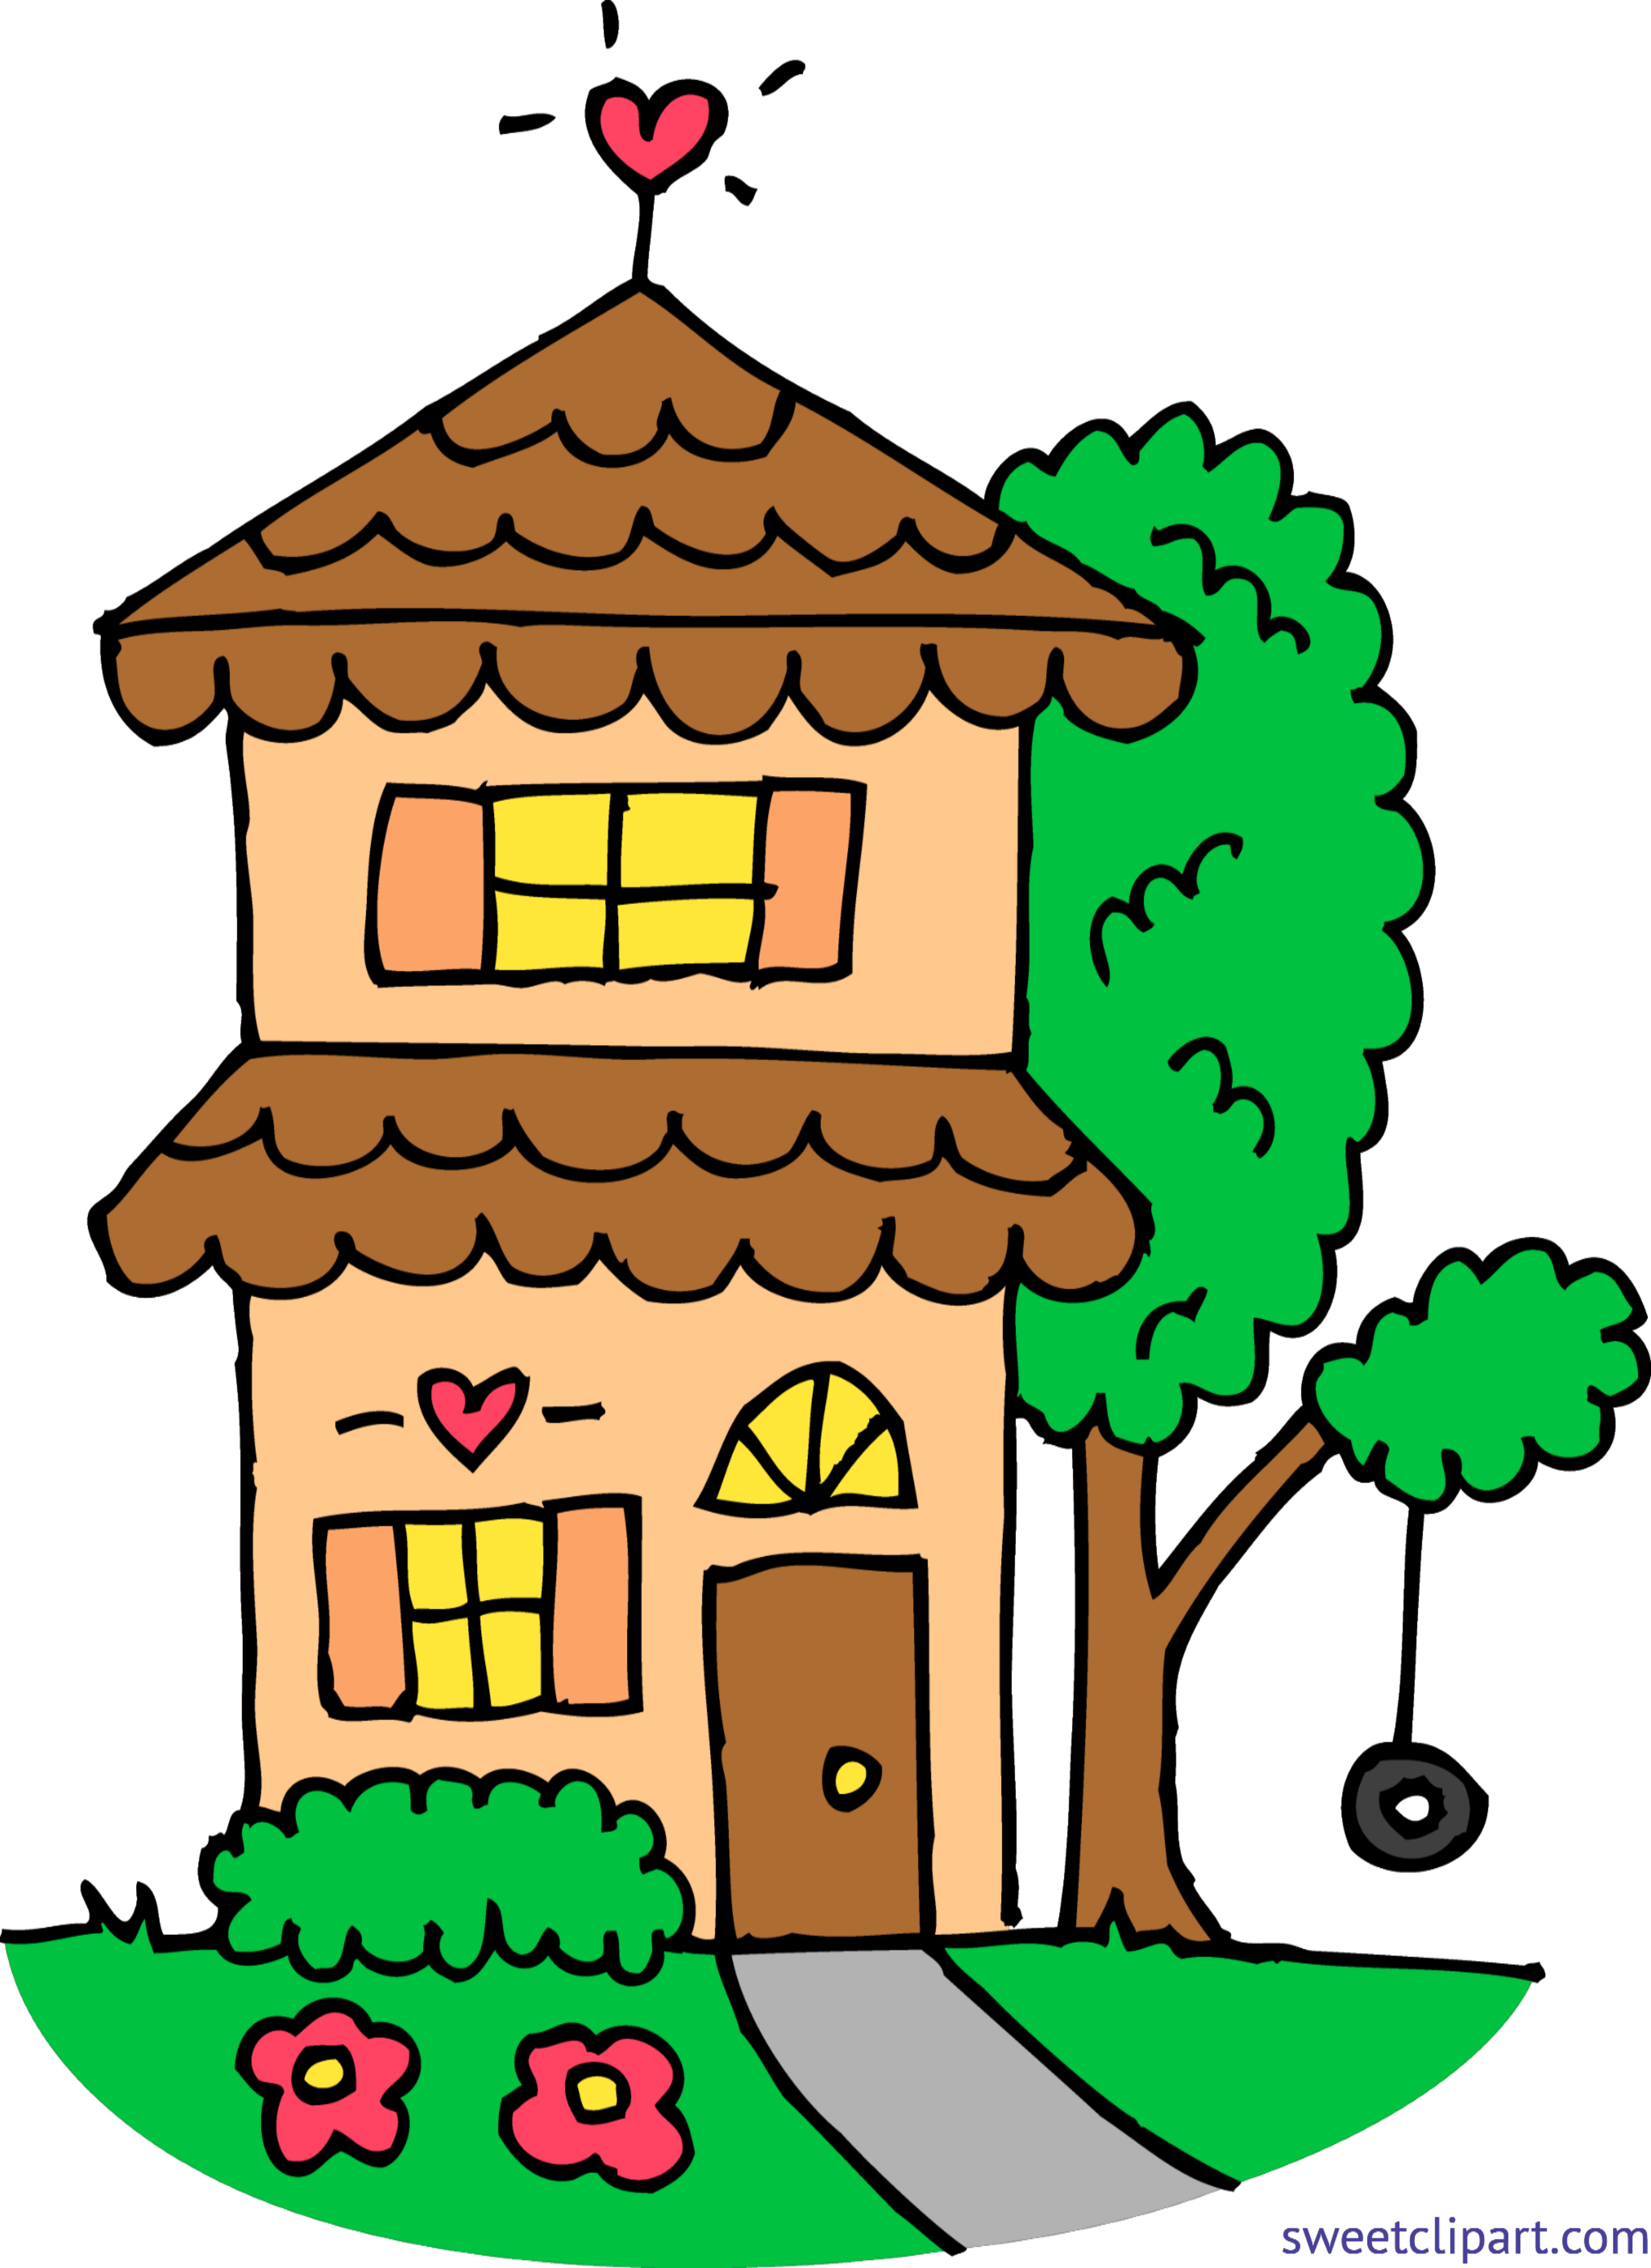 Two story house clipart png library download Cute Orange Two Story House Clip Art - Sweet Clip Art png library download